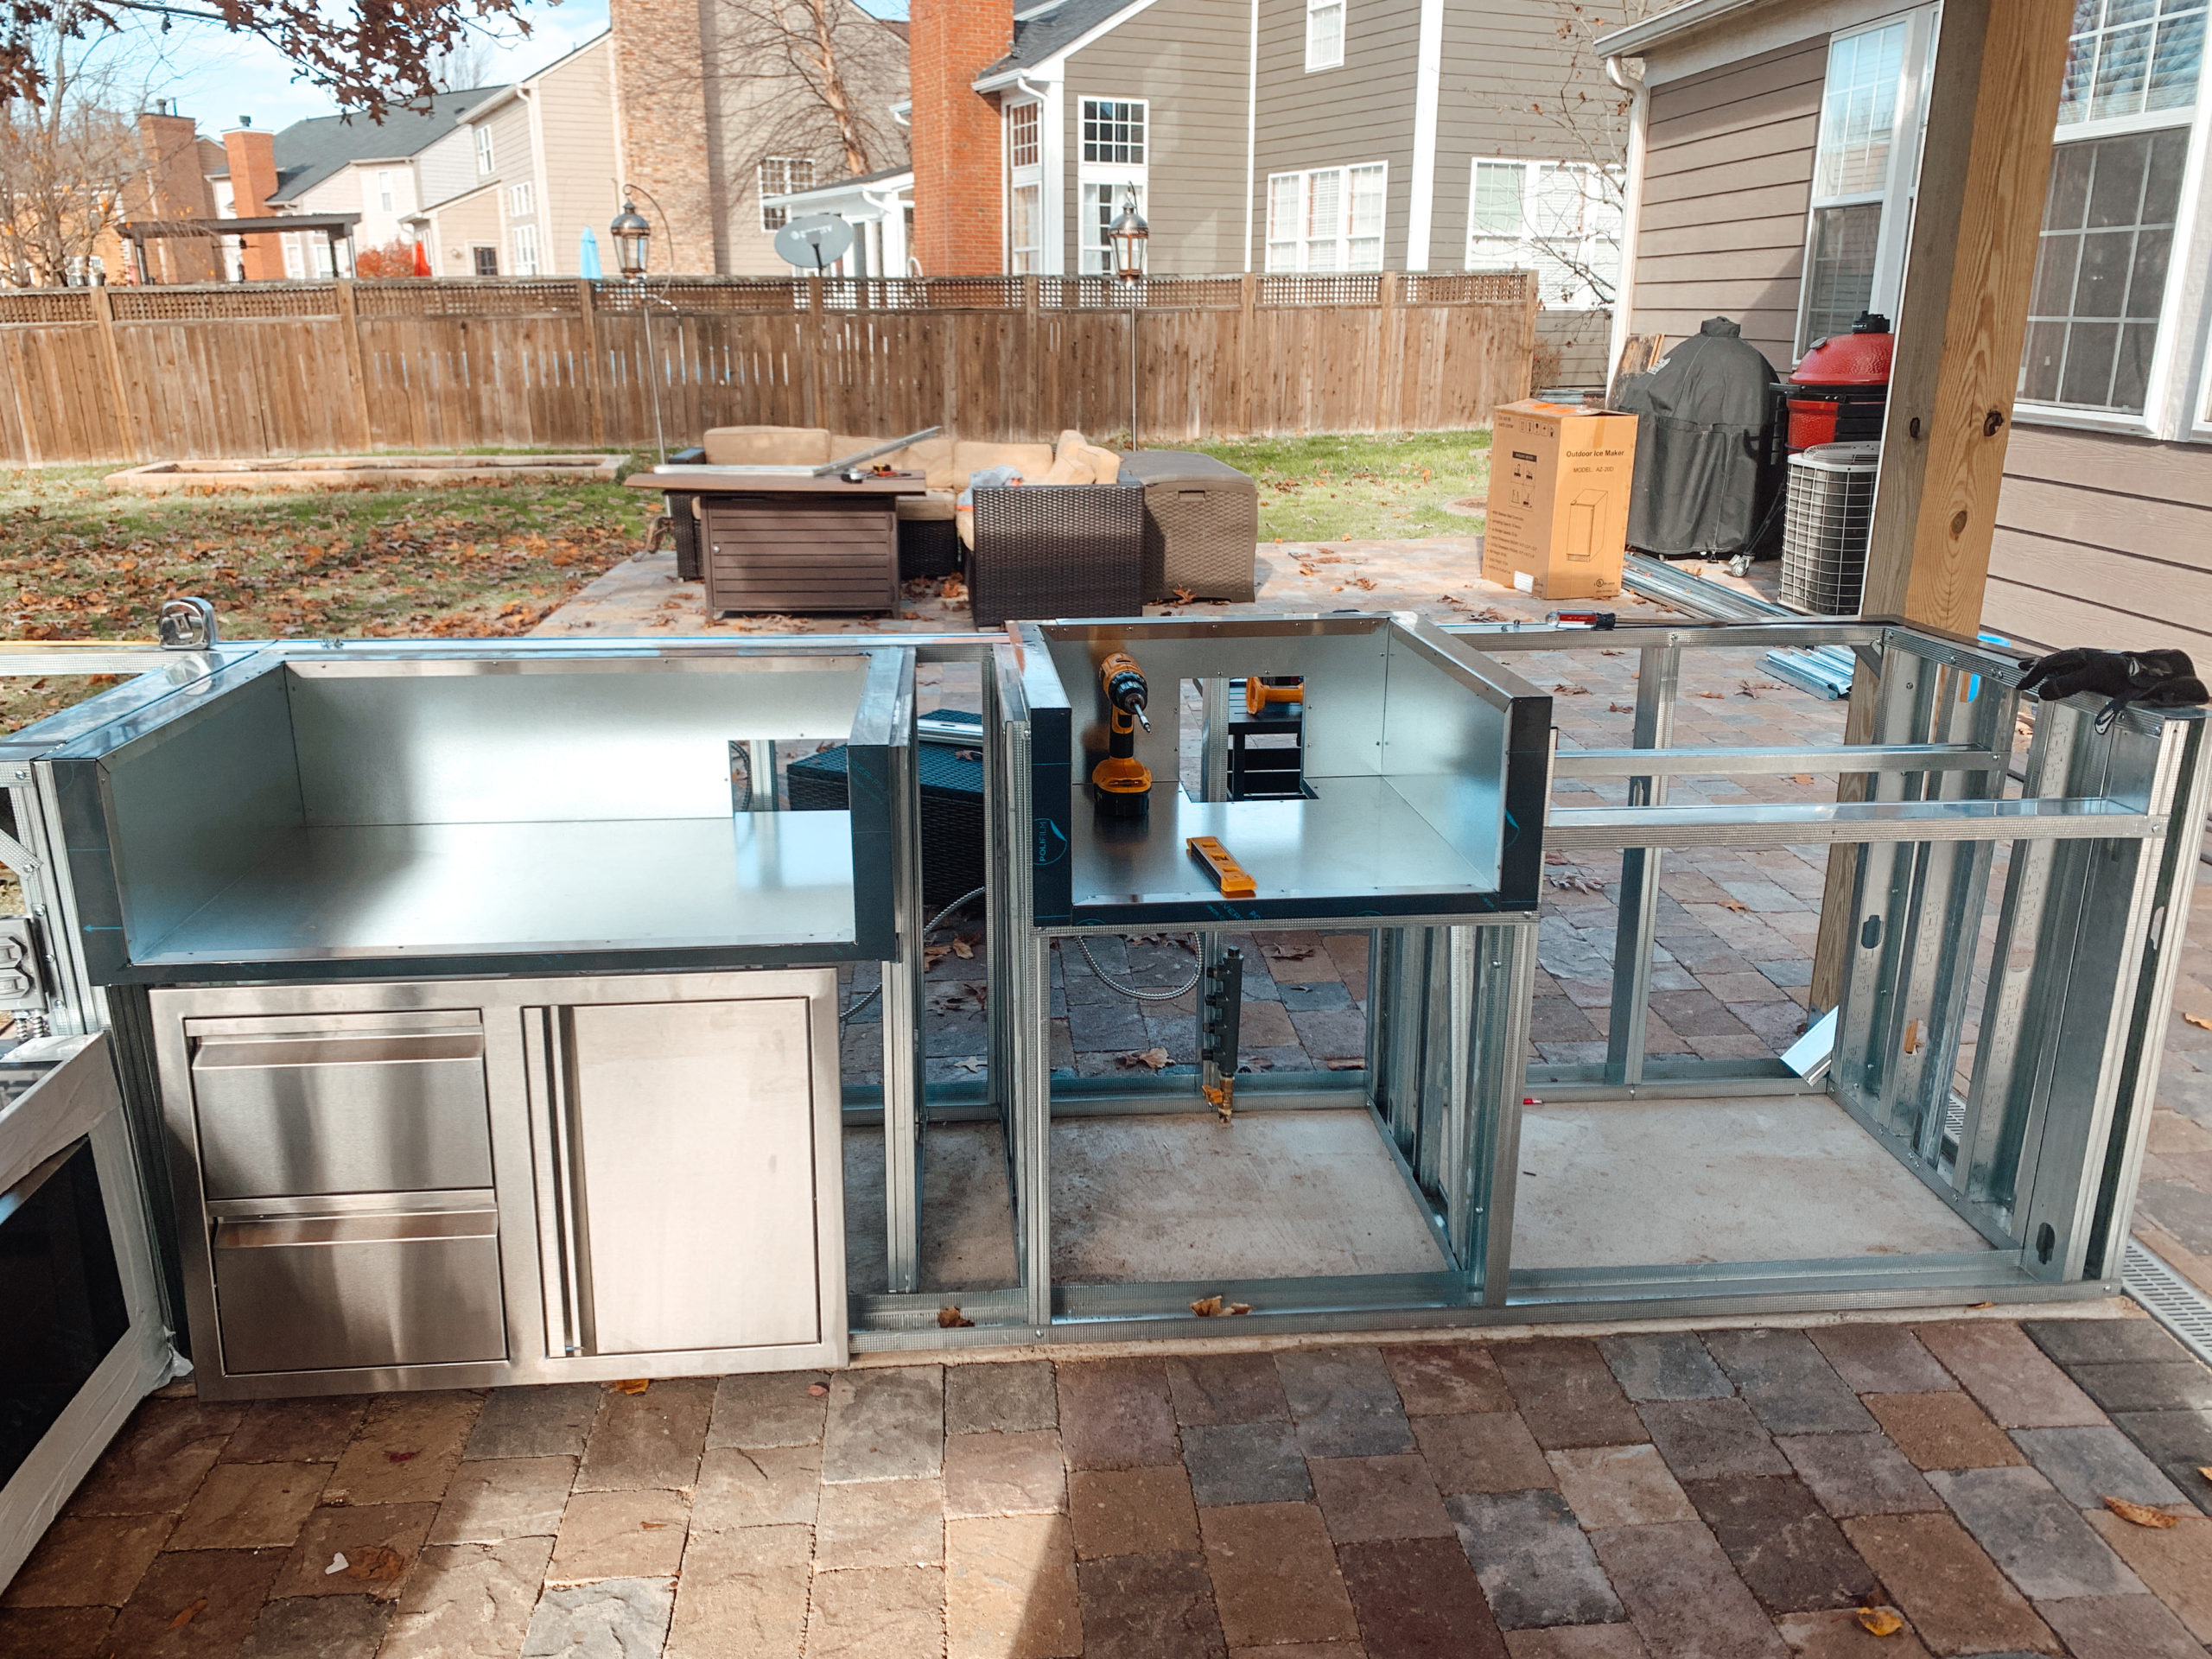 metal framing of outdoor kitchen with space for American Renaissance gas grill on the left